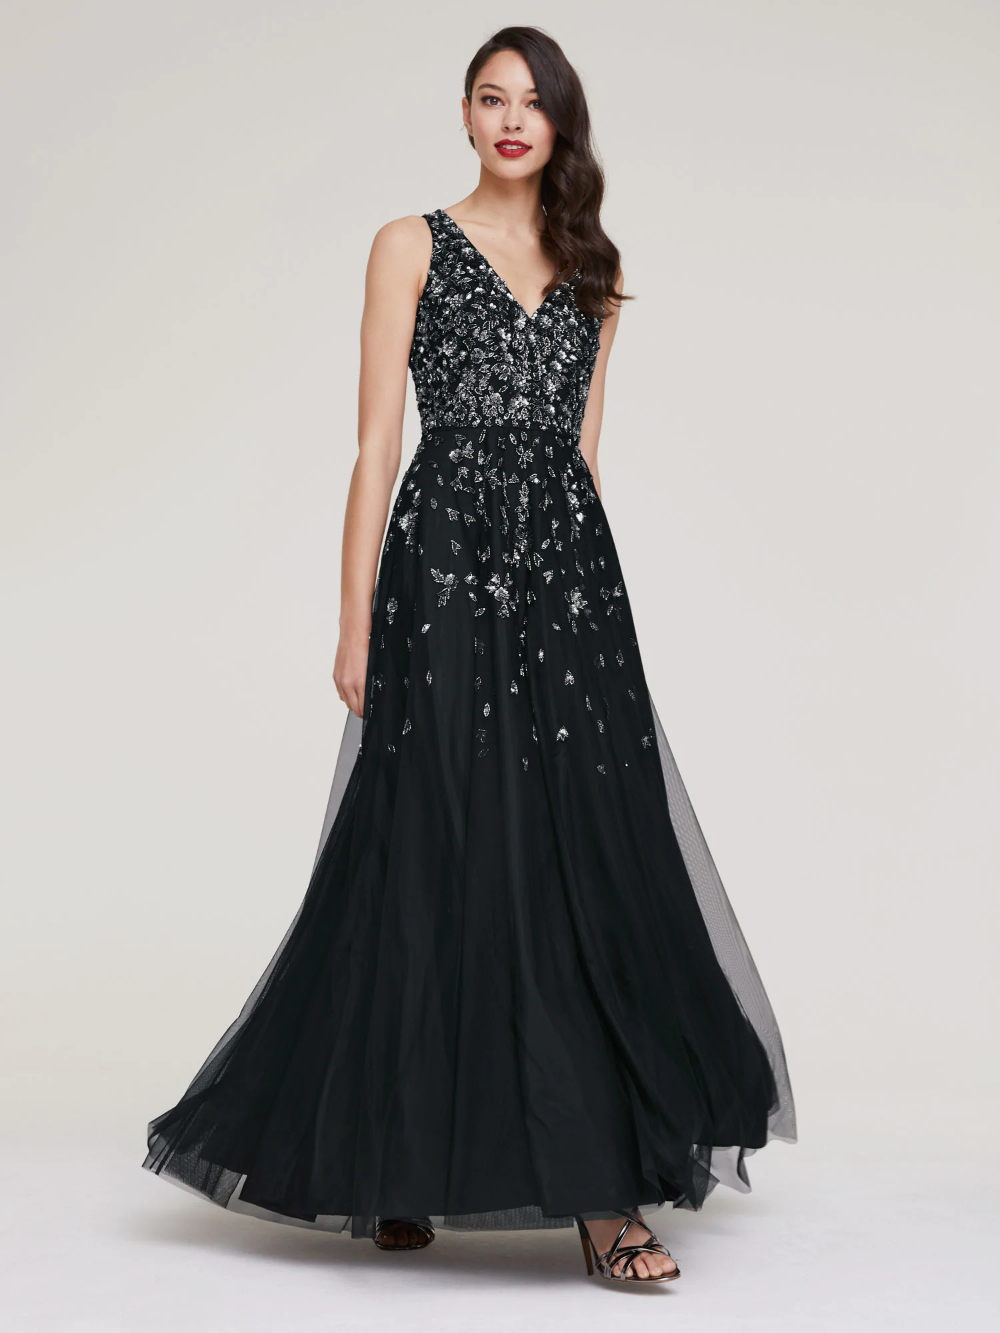 15 Erstaunlich Abendkleid Heine Design20 Top Abendkleid Heine Stylish